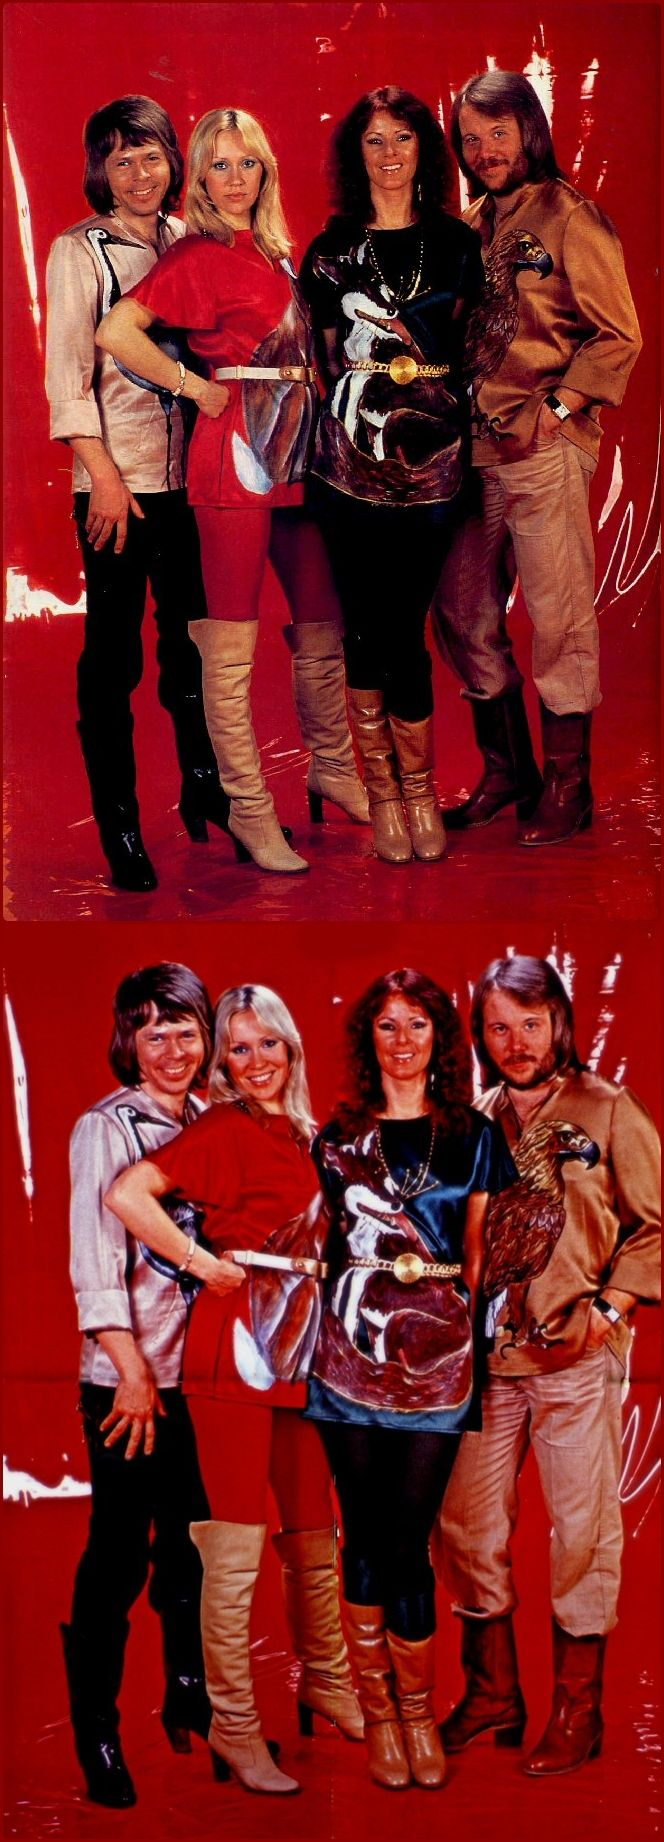 """BRAVO session in Stockholm, April 3, 1978.The 1978 animal outfits were featured during the promotion of ABBA The Album at the beginning of 1978. ABBA performed """"Take A Chance On Me"""" in February 78 on German TV in the """"animal"""" outfits."""